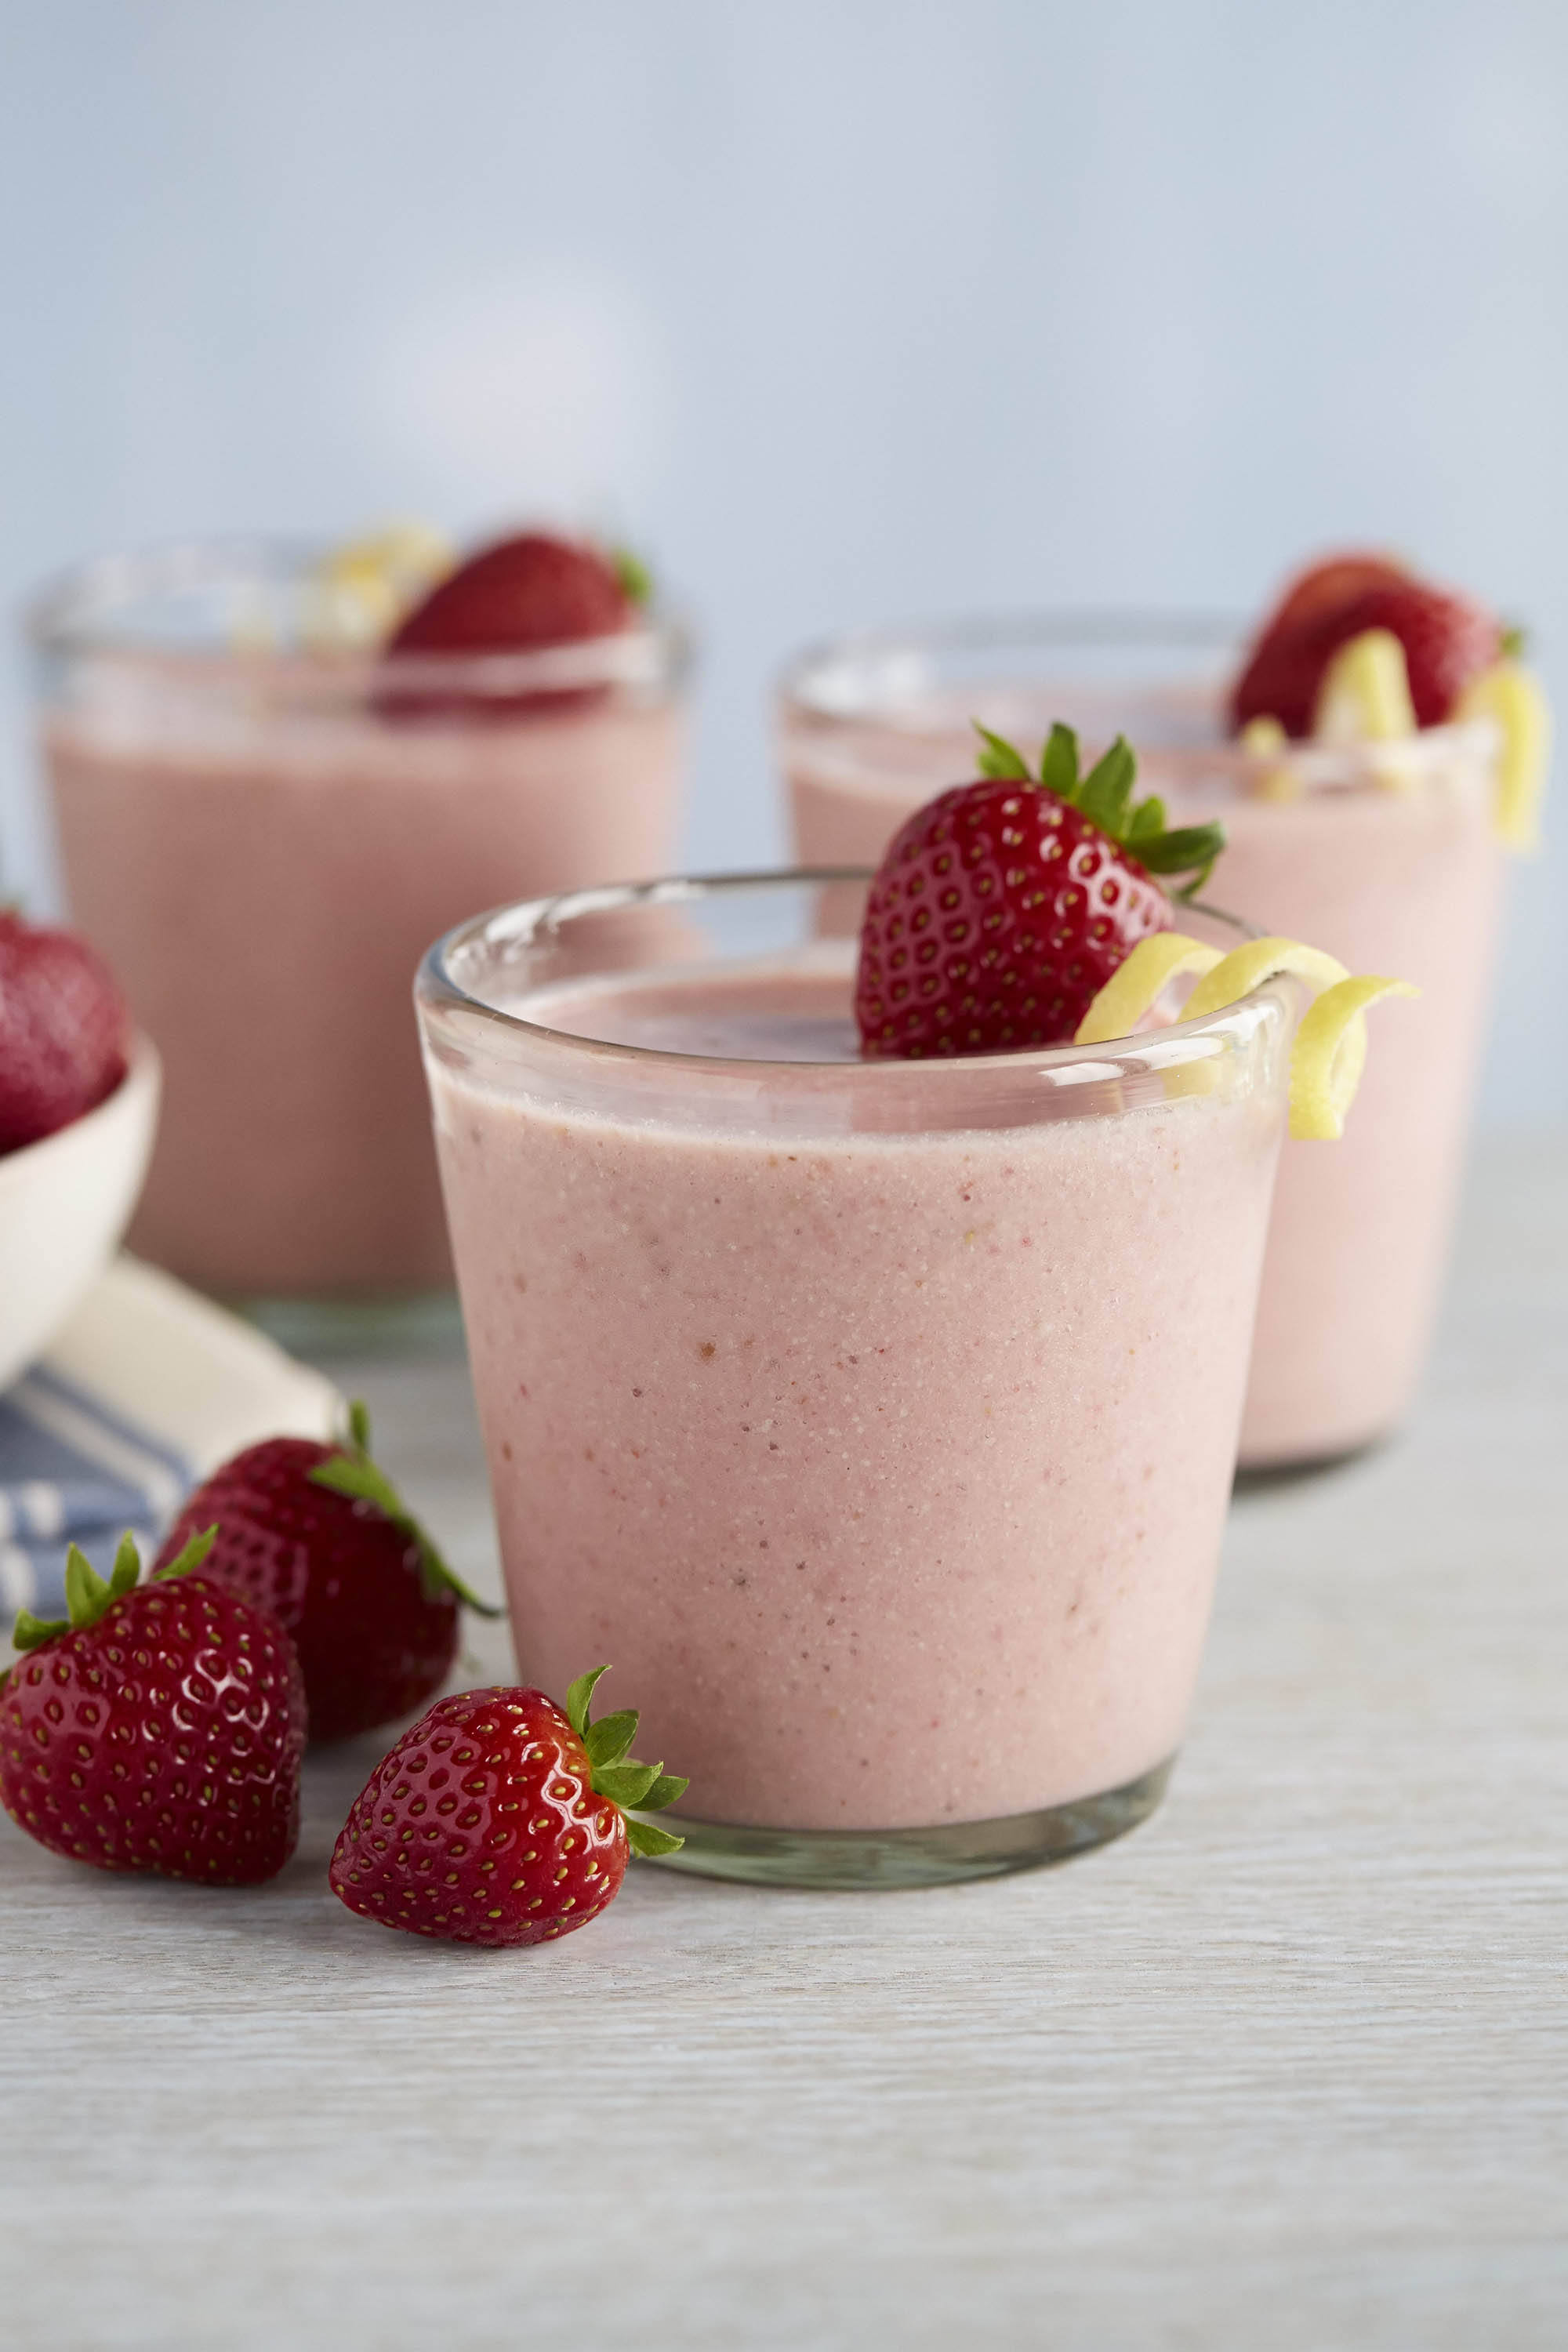 Creamy Lemon Strawberry Smoothie with Coconut Water